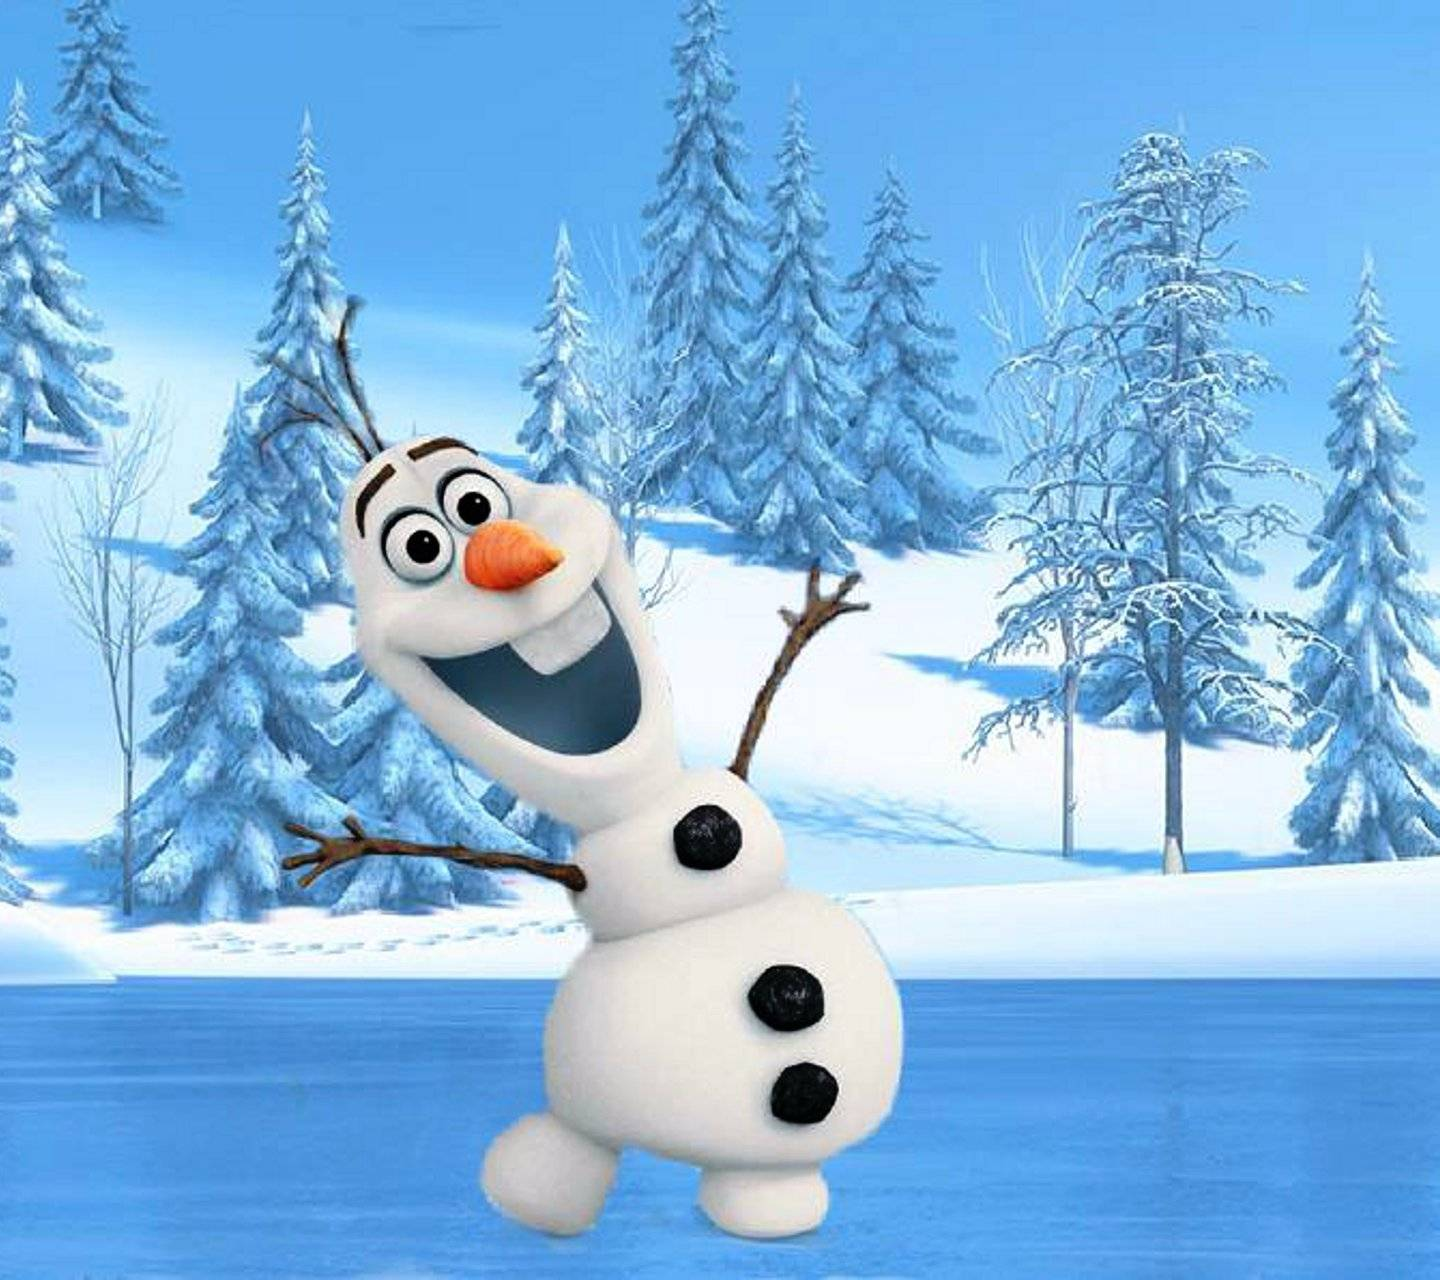 Olaf Frozen 2 Ringtones And Wallpapers Free By Zedge